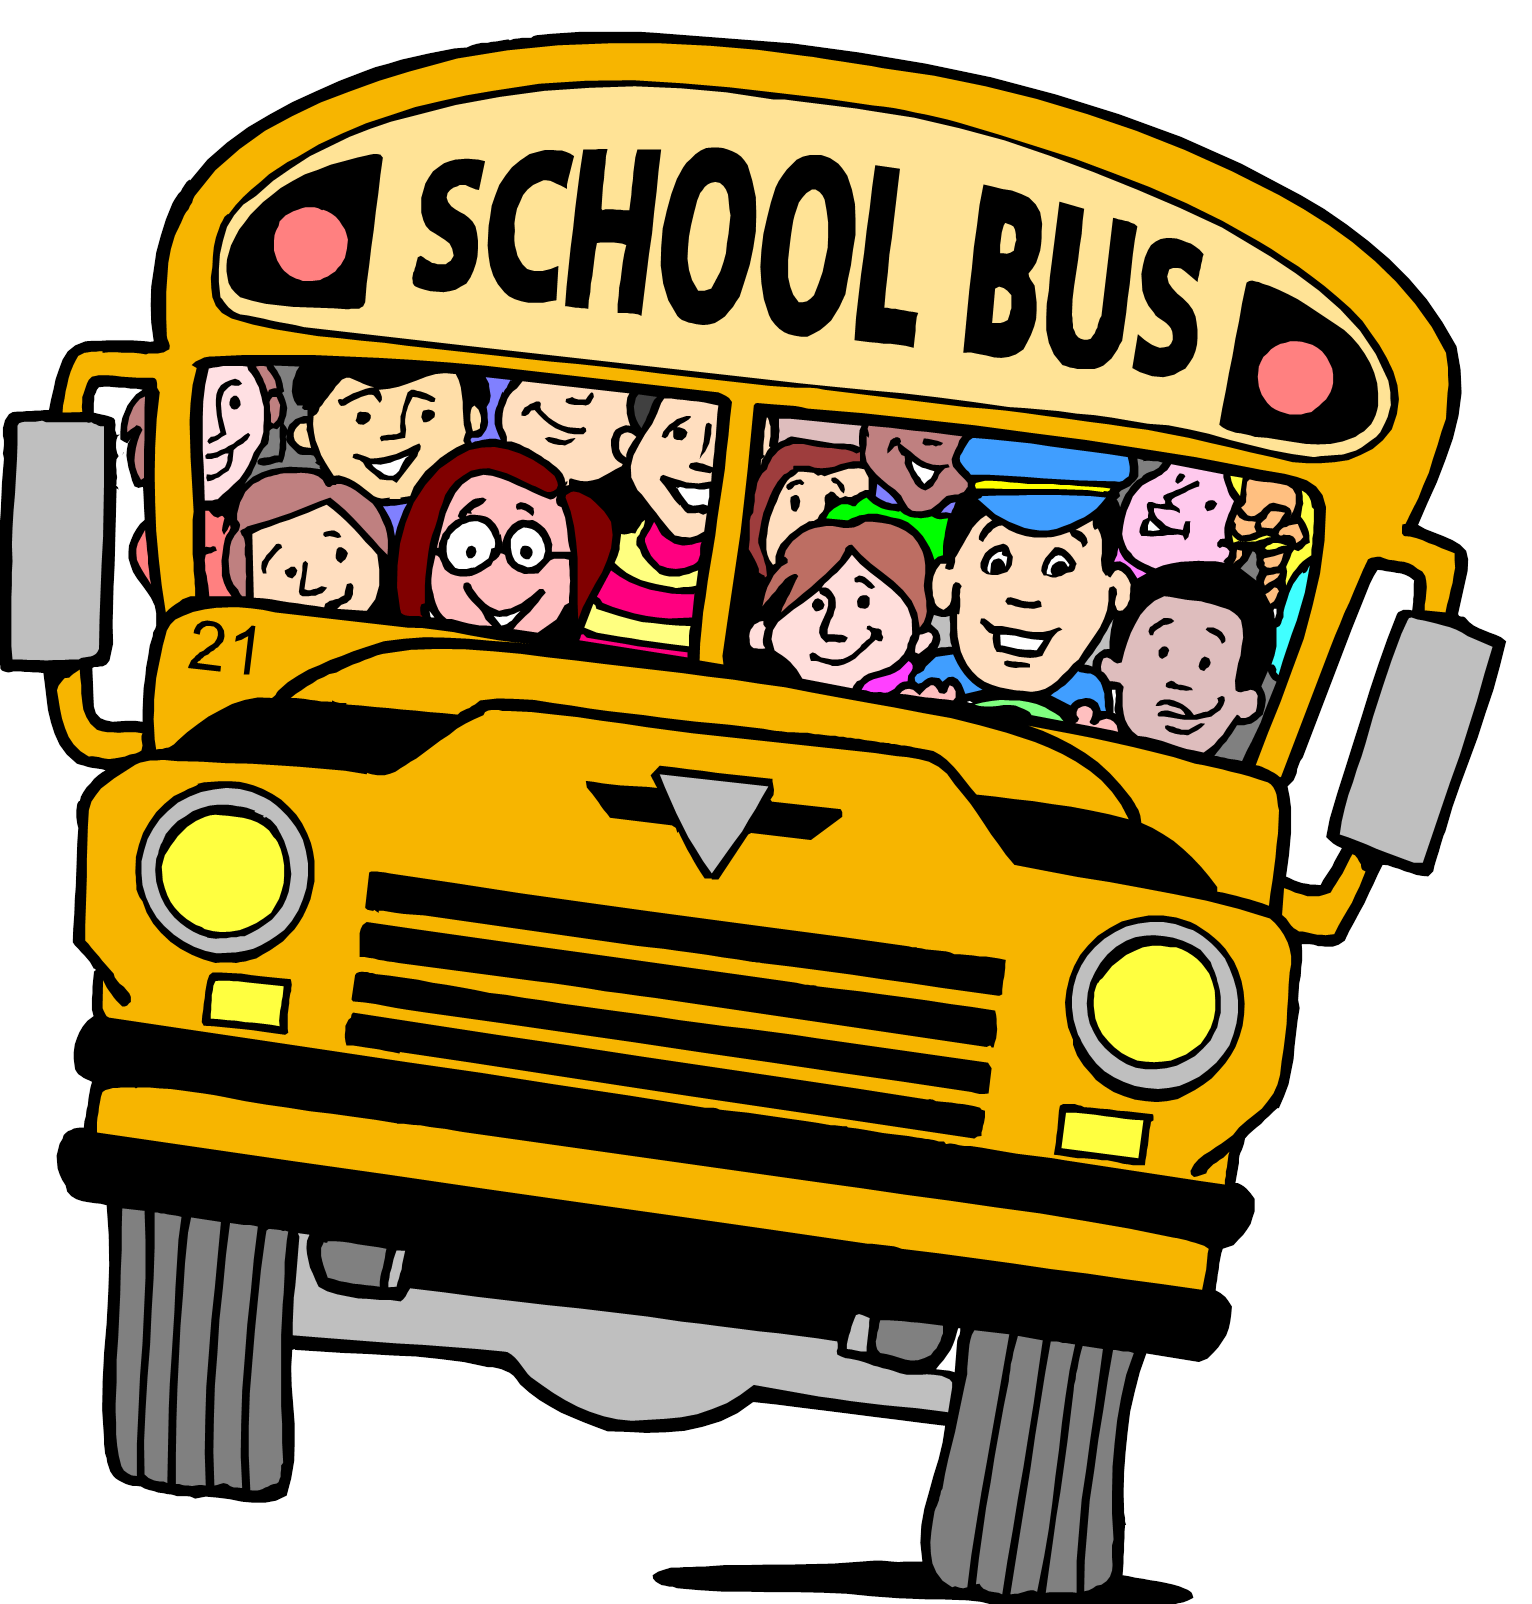 School bus clipart for kids transparent schoolbus clipart | Clip Art - school bus | terrace | Pinterest ... transparent